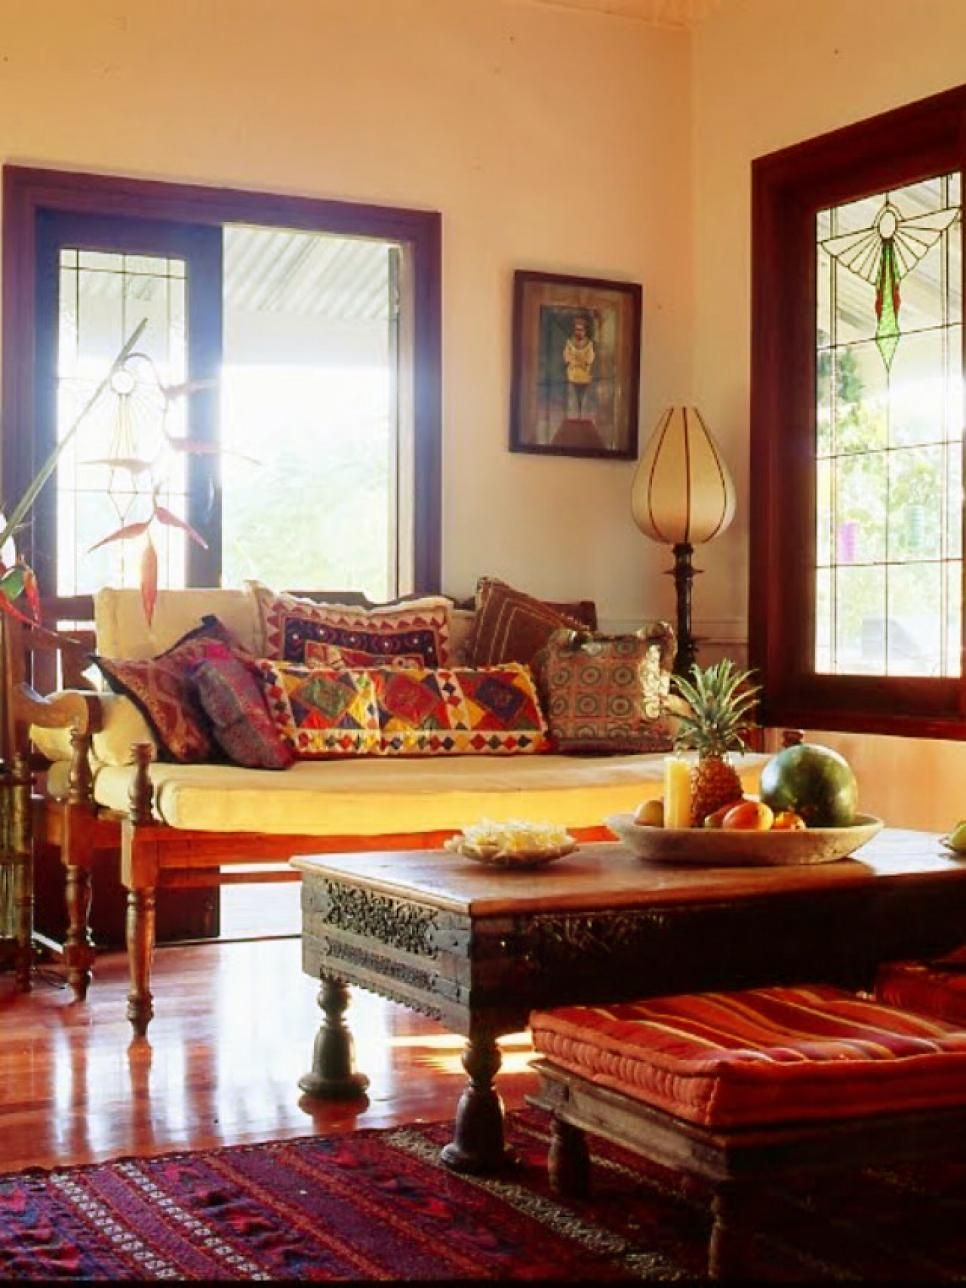 top 10 indian interior design trends for 2020 with images on top 10 interior paint brands id=81887